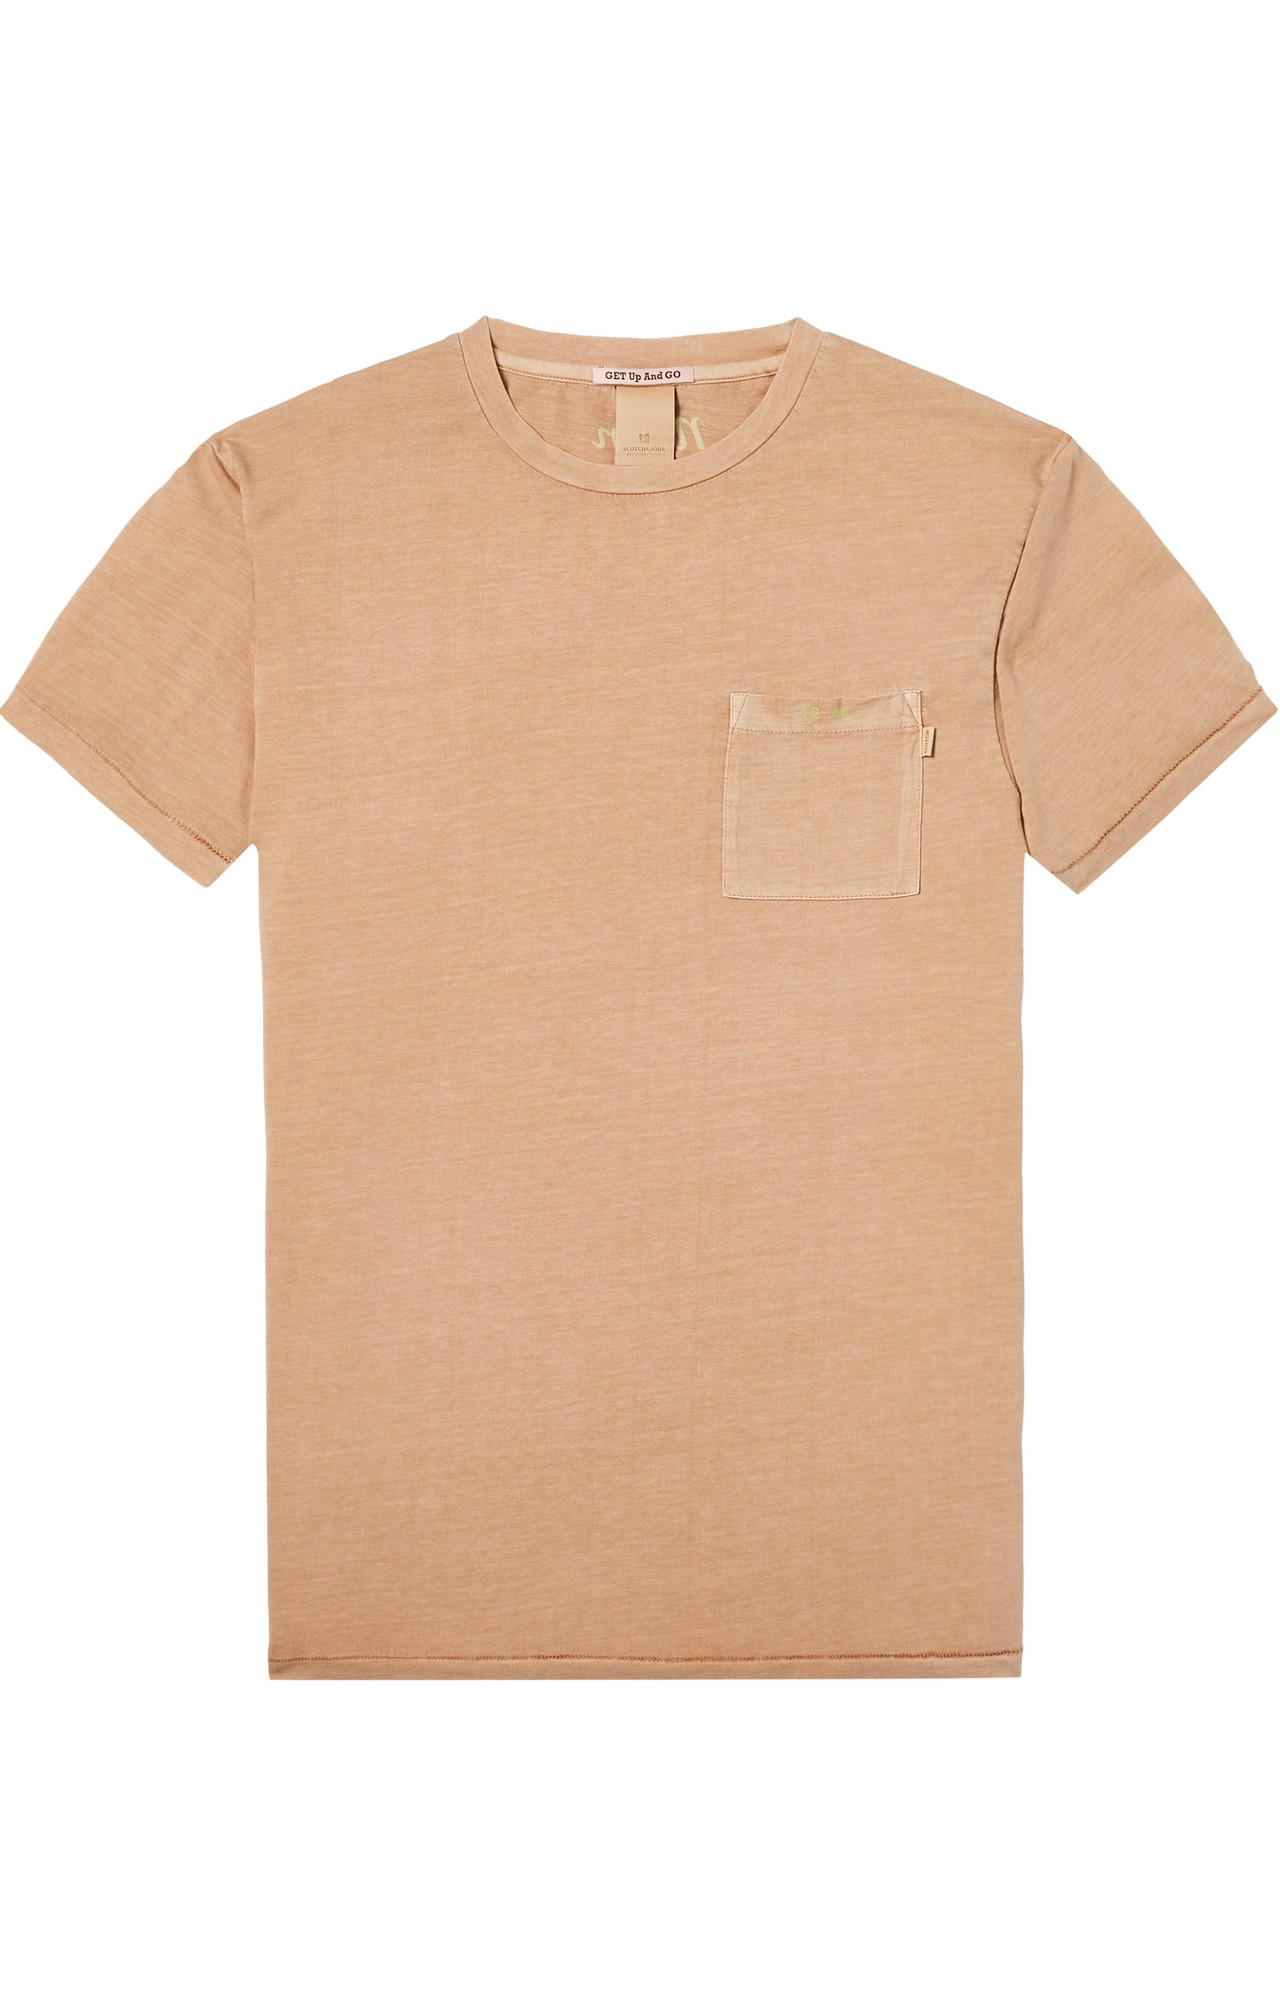 Scotch & Soda | GARMENT-DYED TEE WITH CHEST POCKET AND S